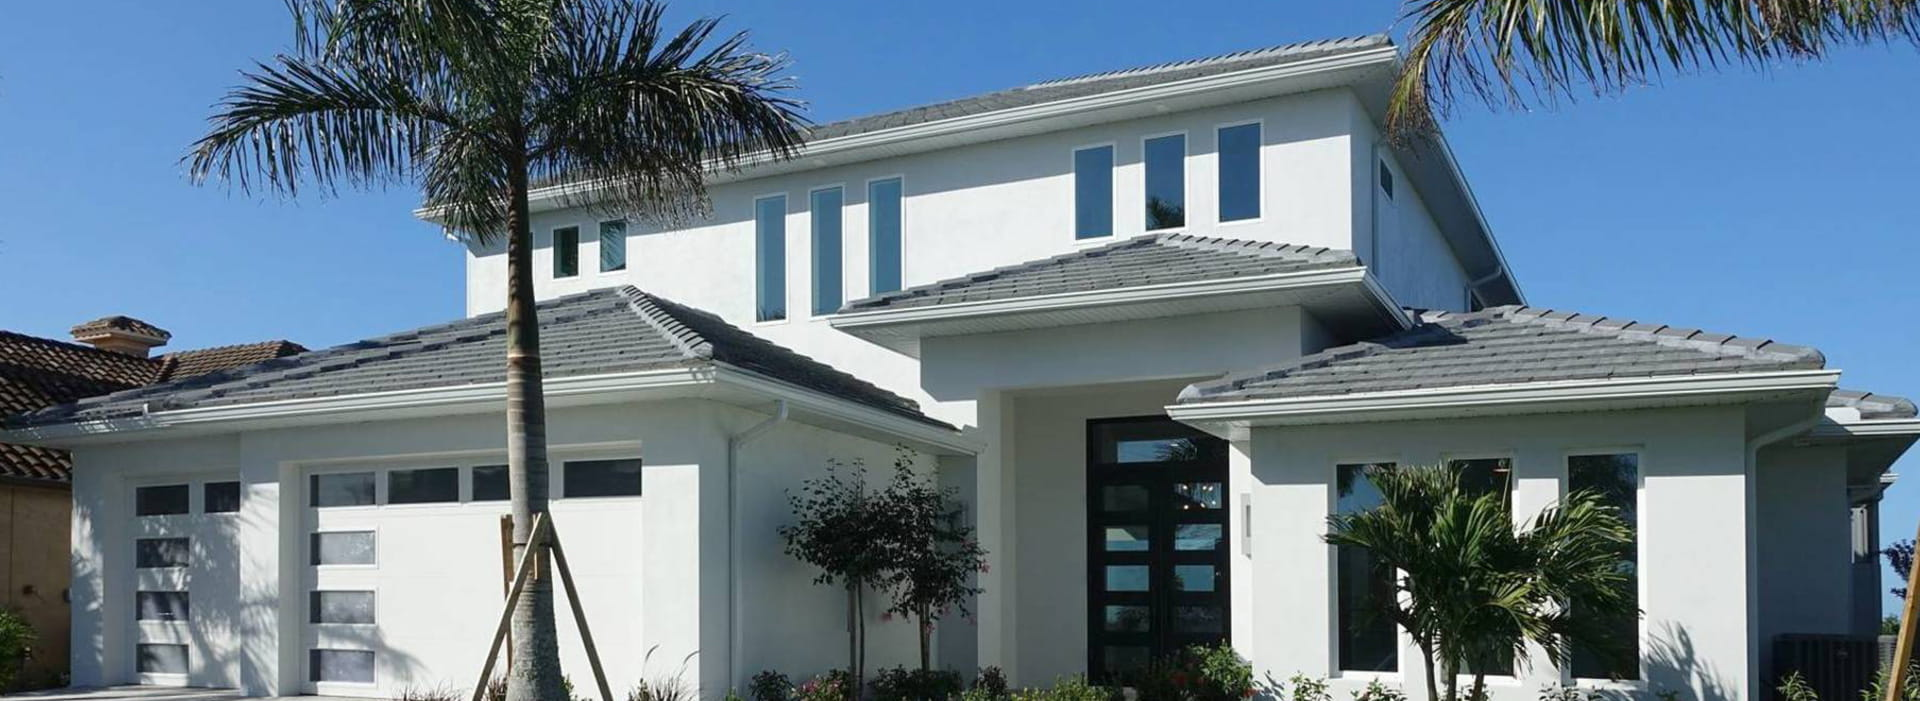 Luxushaus in Florida, Cape Coral, Haus